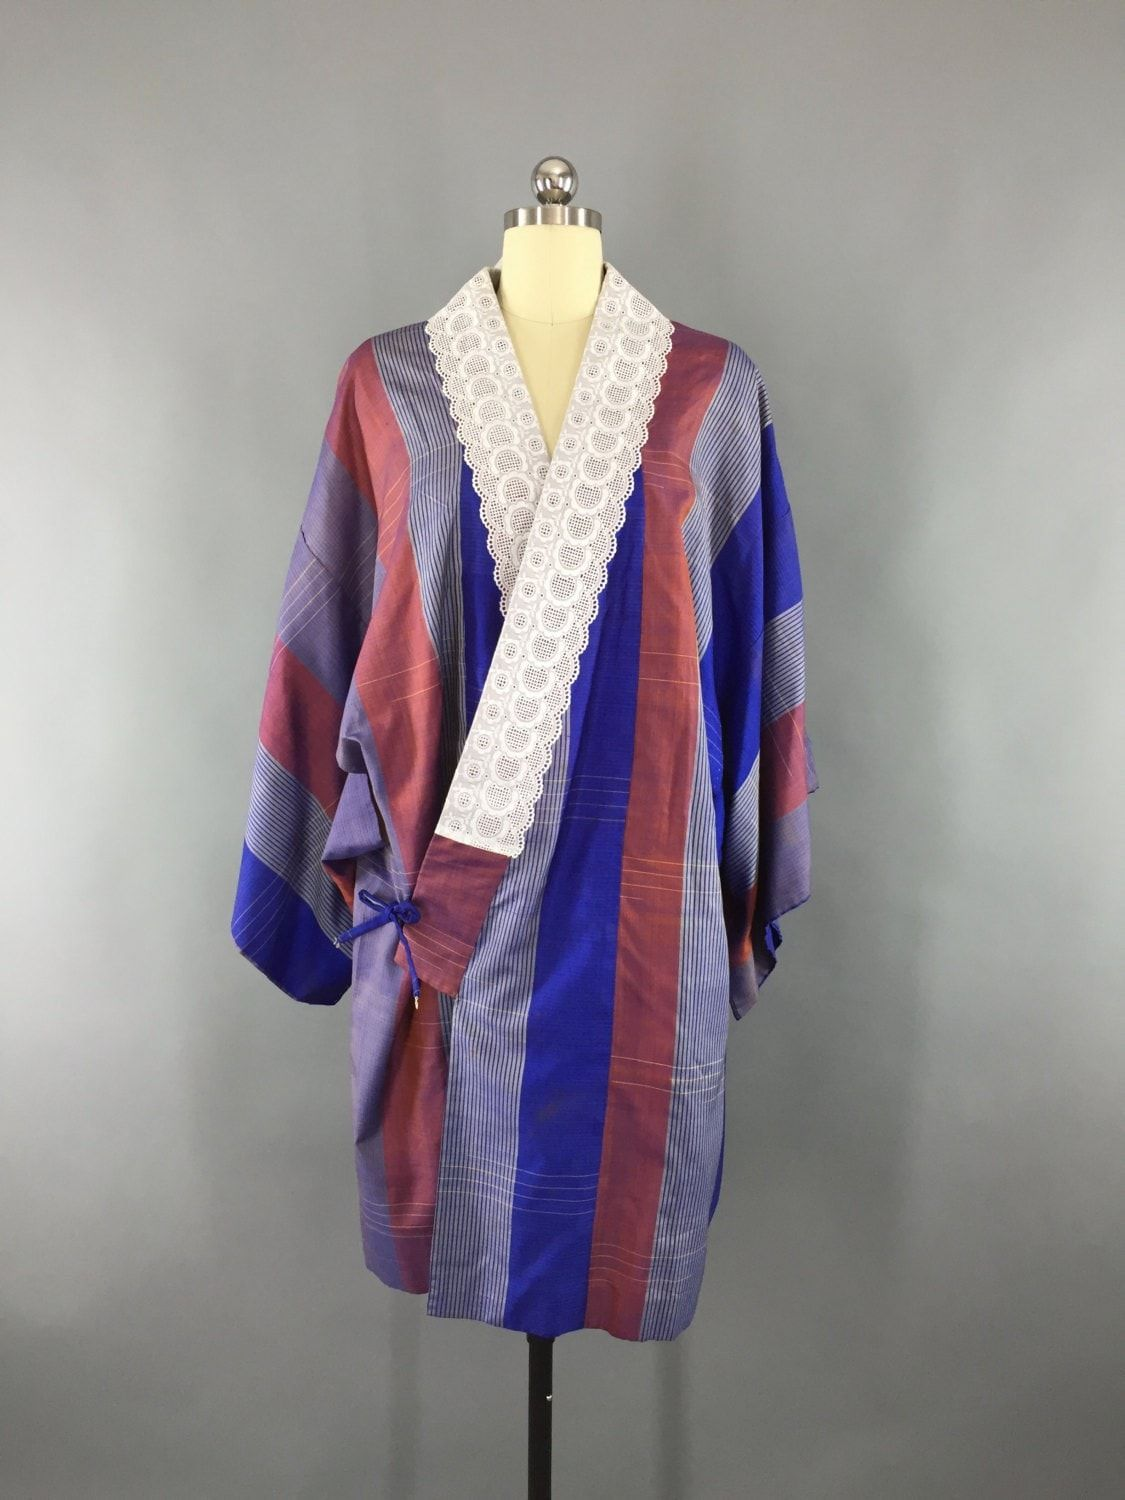 5d0830976d8 Vintage 1960s Silk Haori Kimono Cardigan Jacket Wrap Coat with Blue and  Maroon Stripes